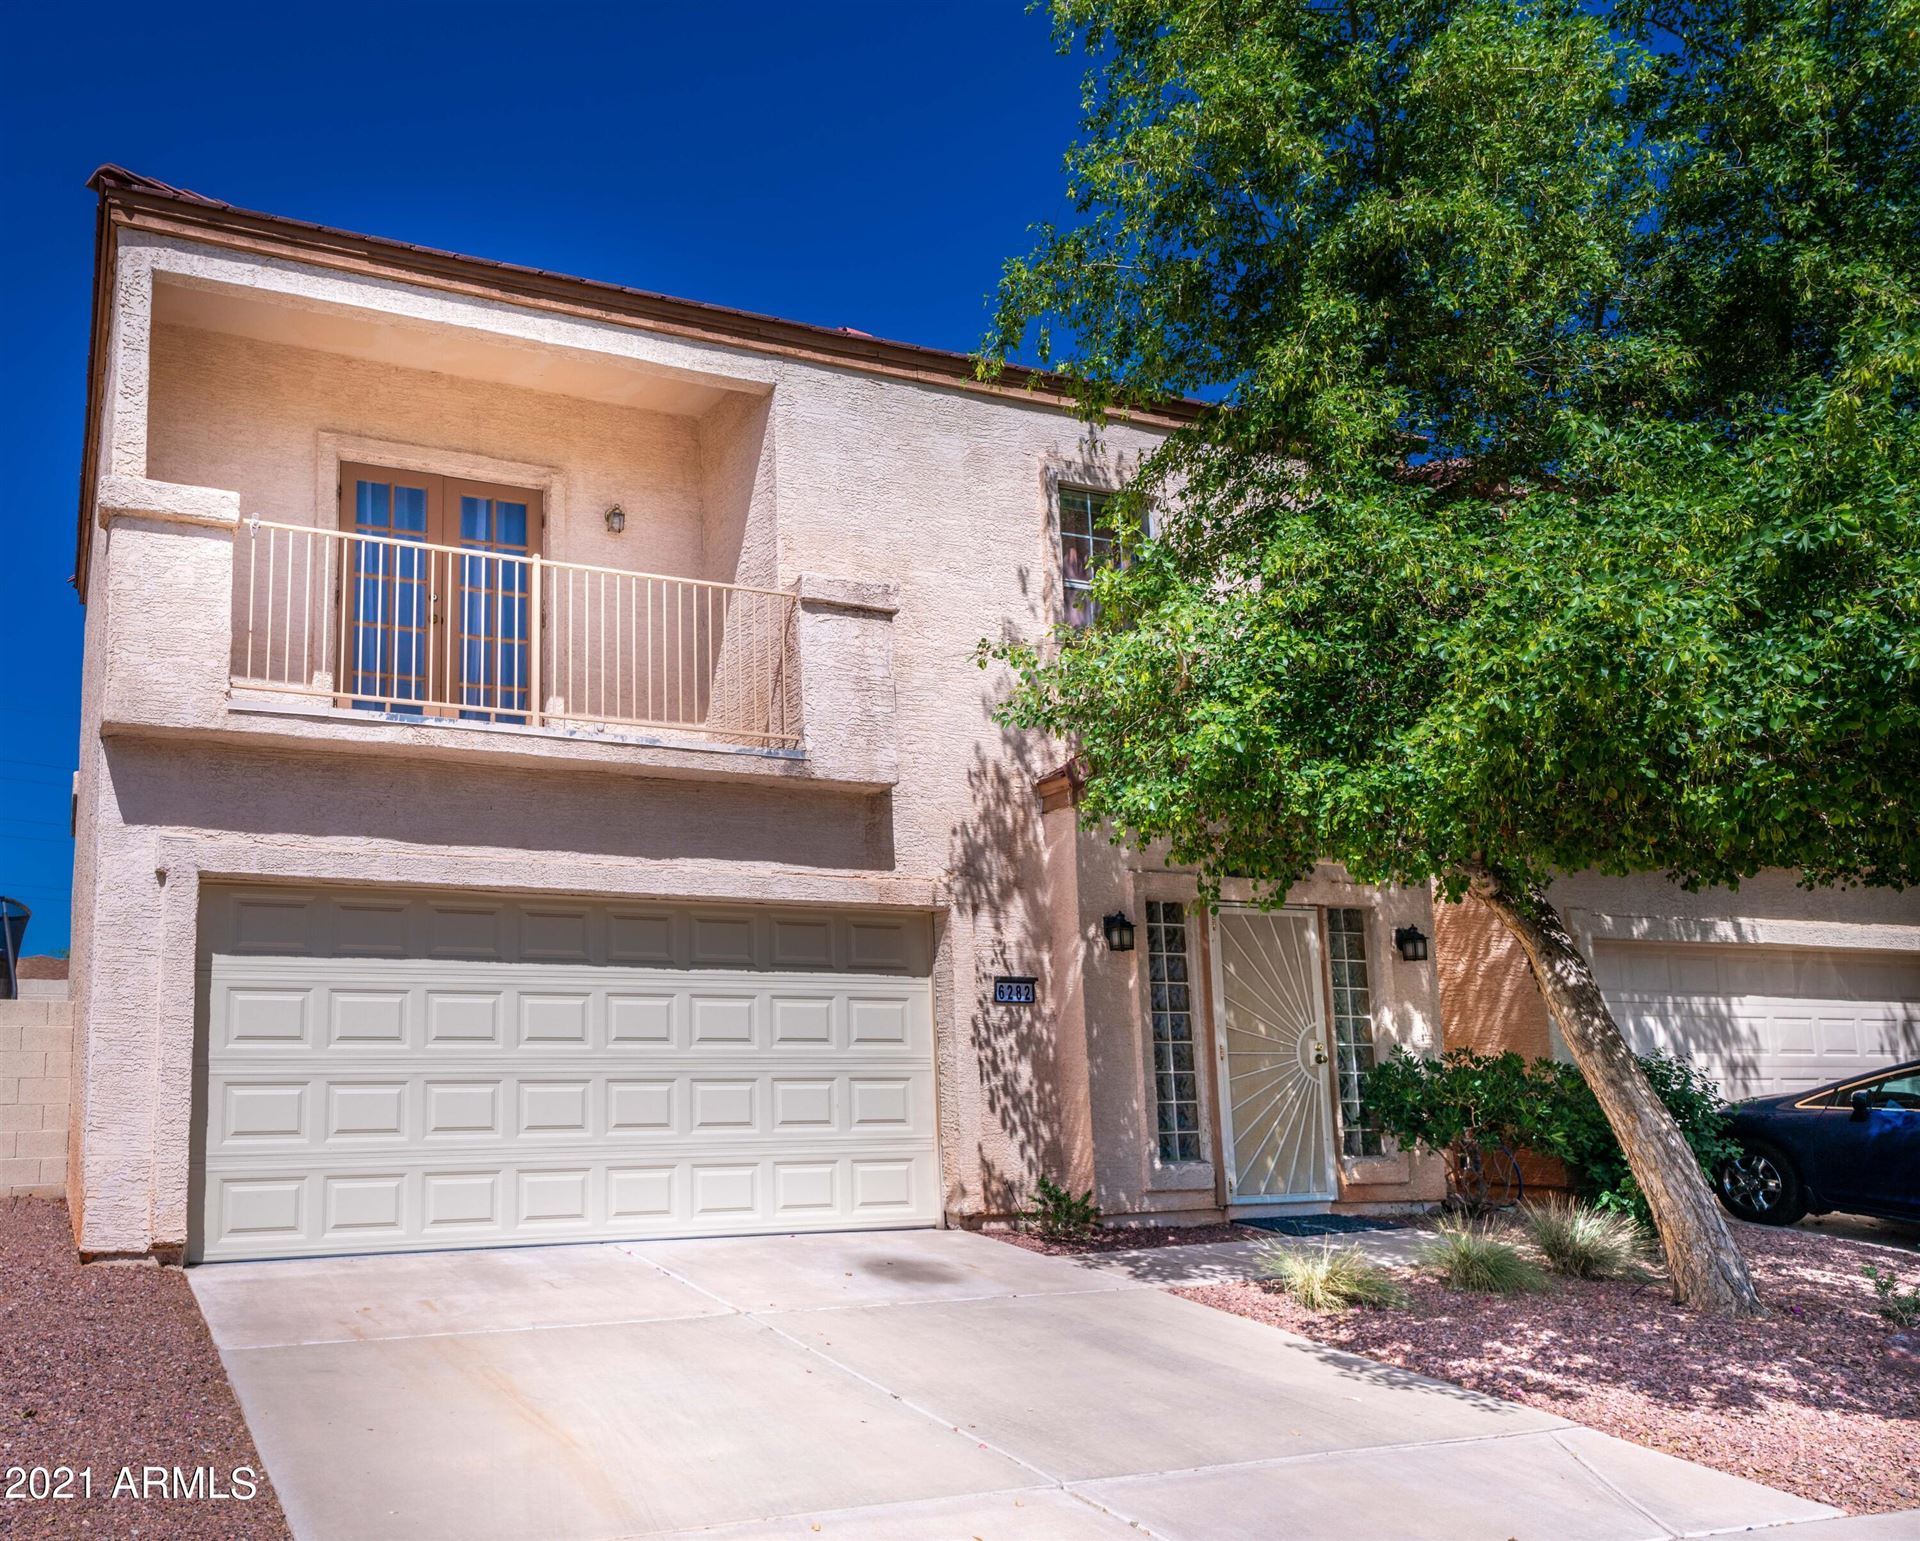 Photo of 6282 S COLONIAL Way, Tempe, AZ 85283 (MLS # 6231612)